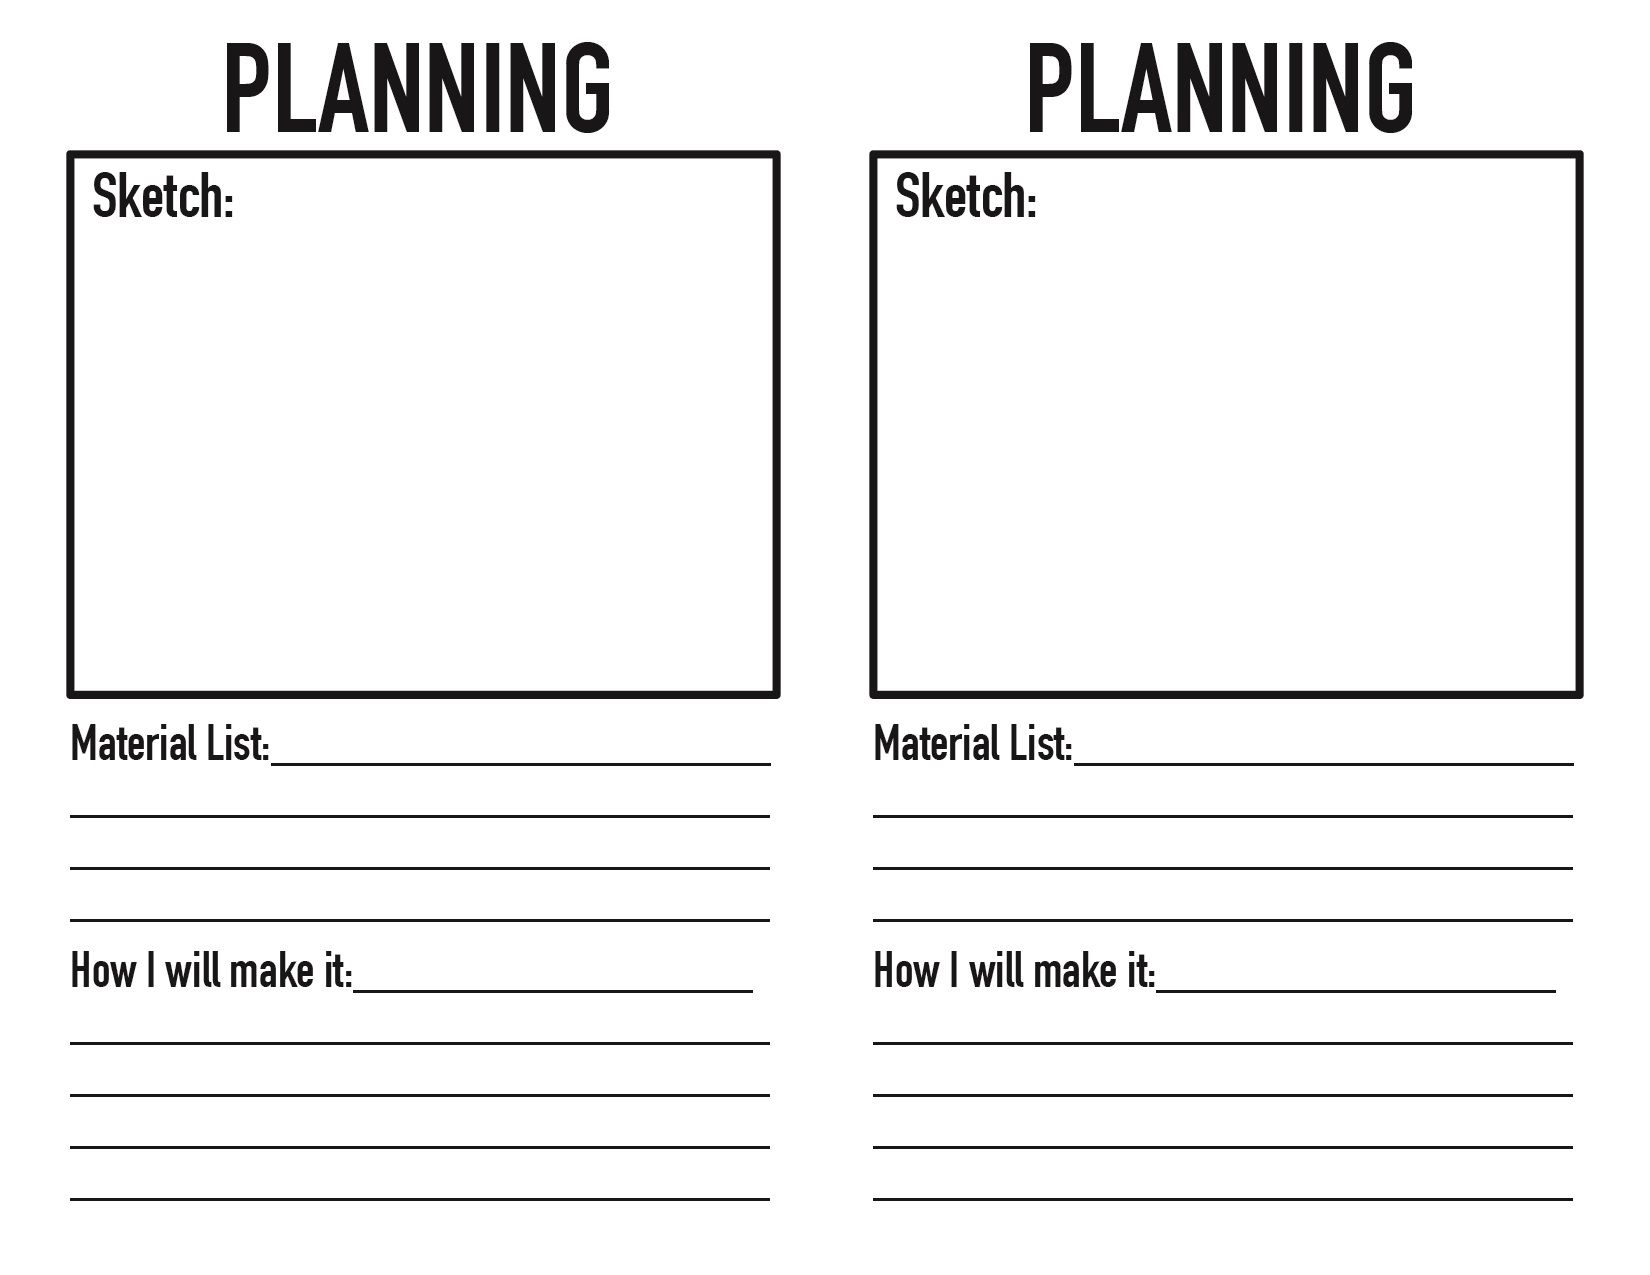 Project Planning Worksheet Students Get One Of These When